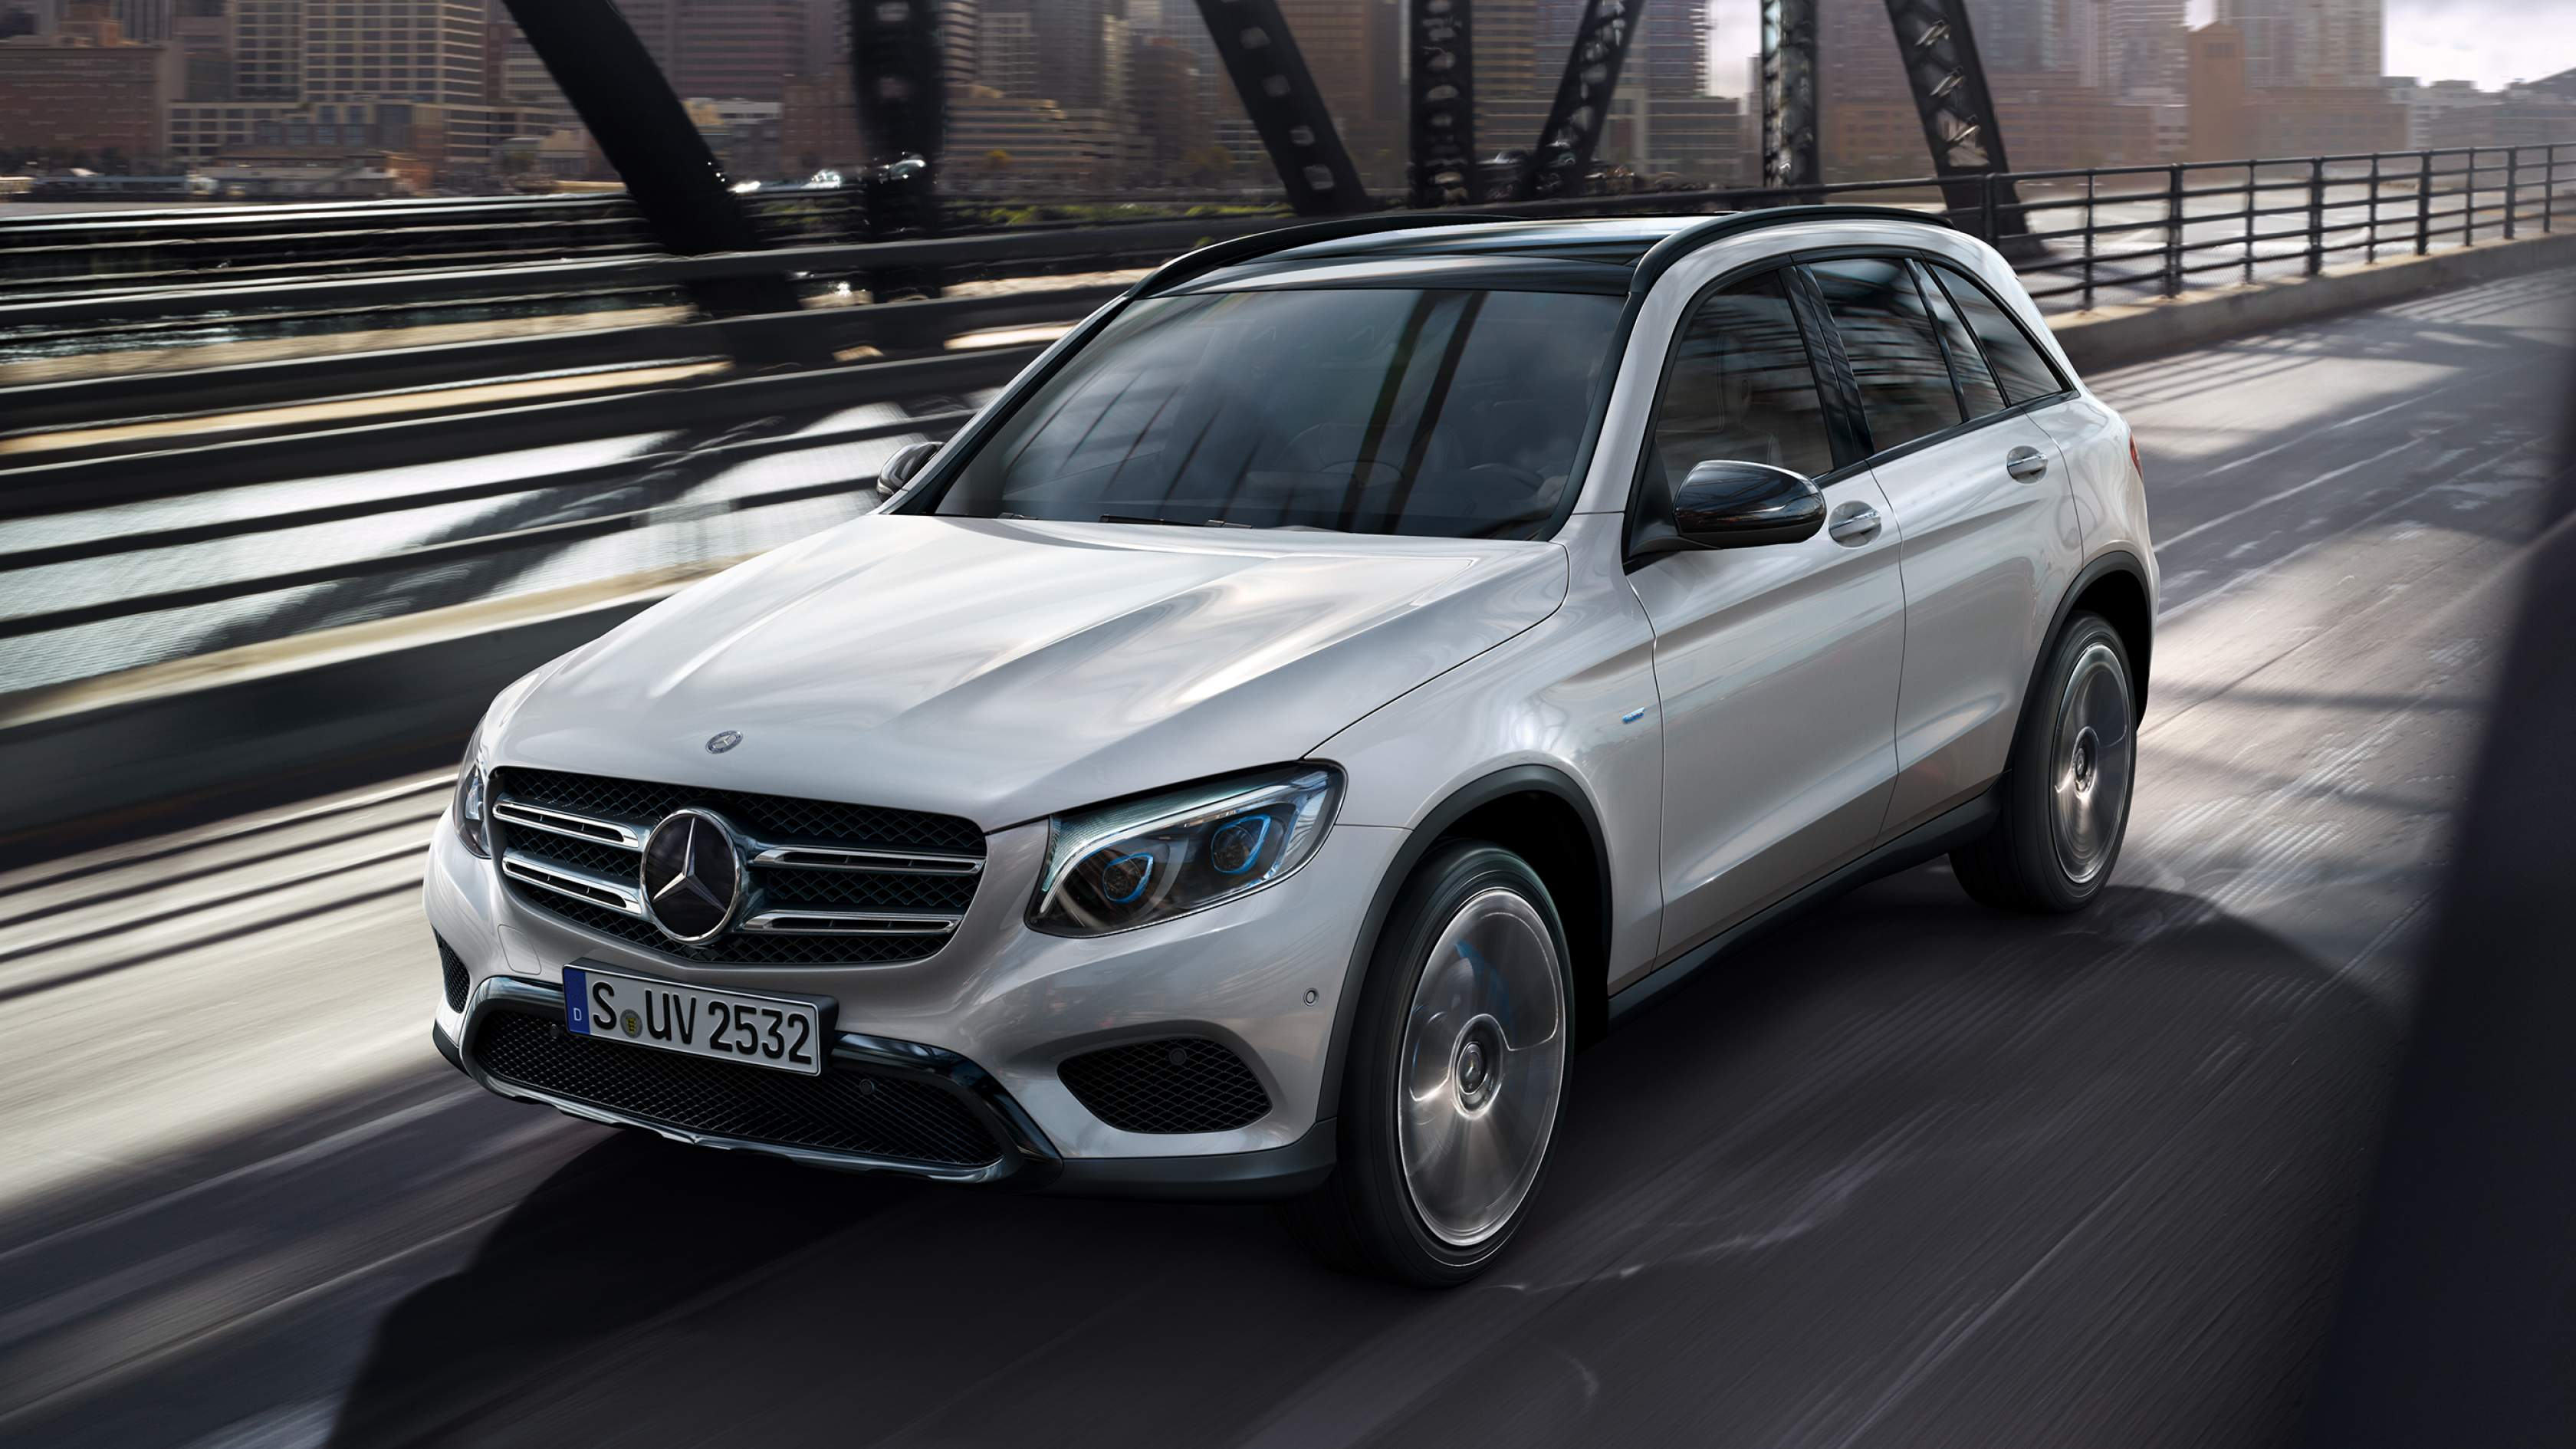 Mercedes-Benz GLC FleetEdition hos Björkholm bil i Skövde